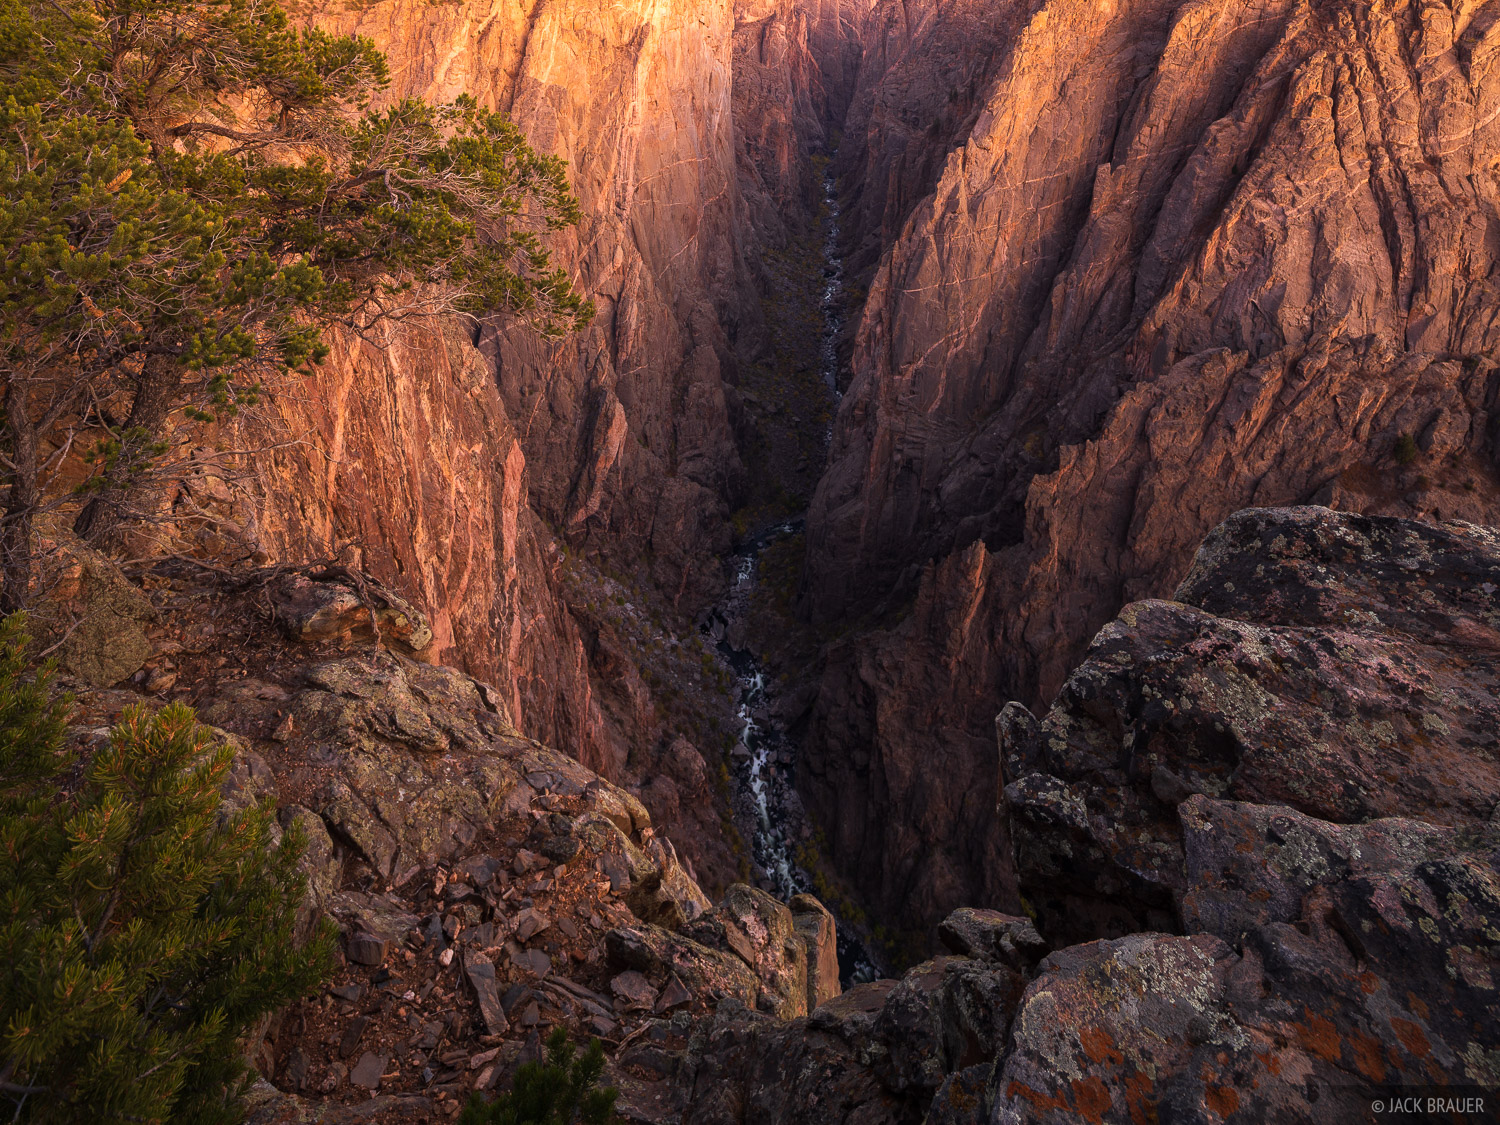 Glowing dusk light illuminates the walls of the Black Canyon after sunset, nearly 2,000 feet above the Gunnison River.